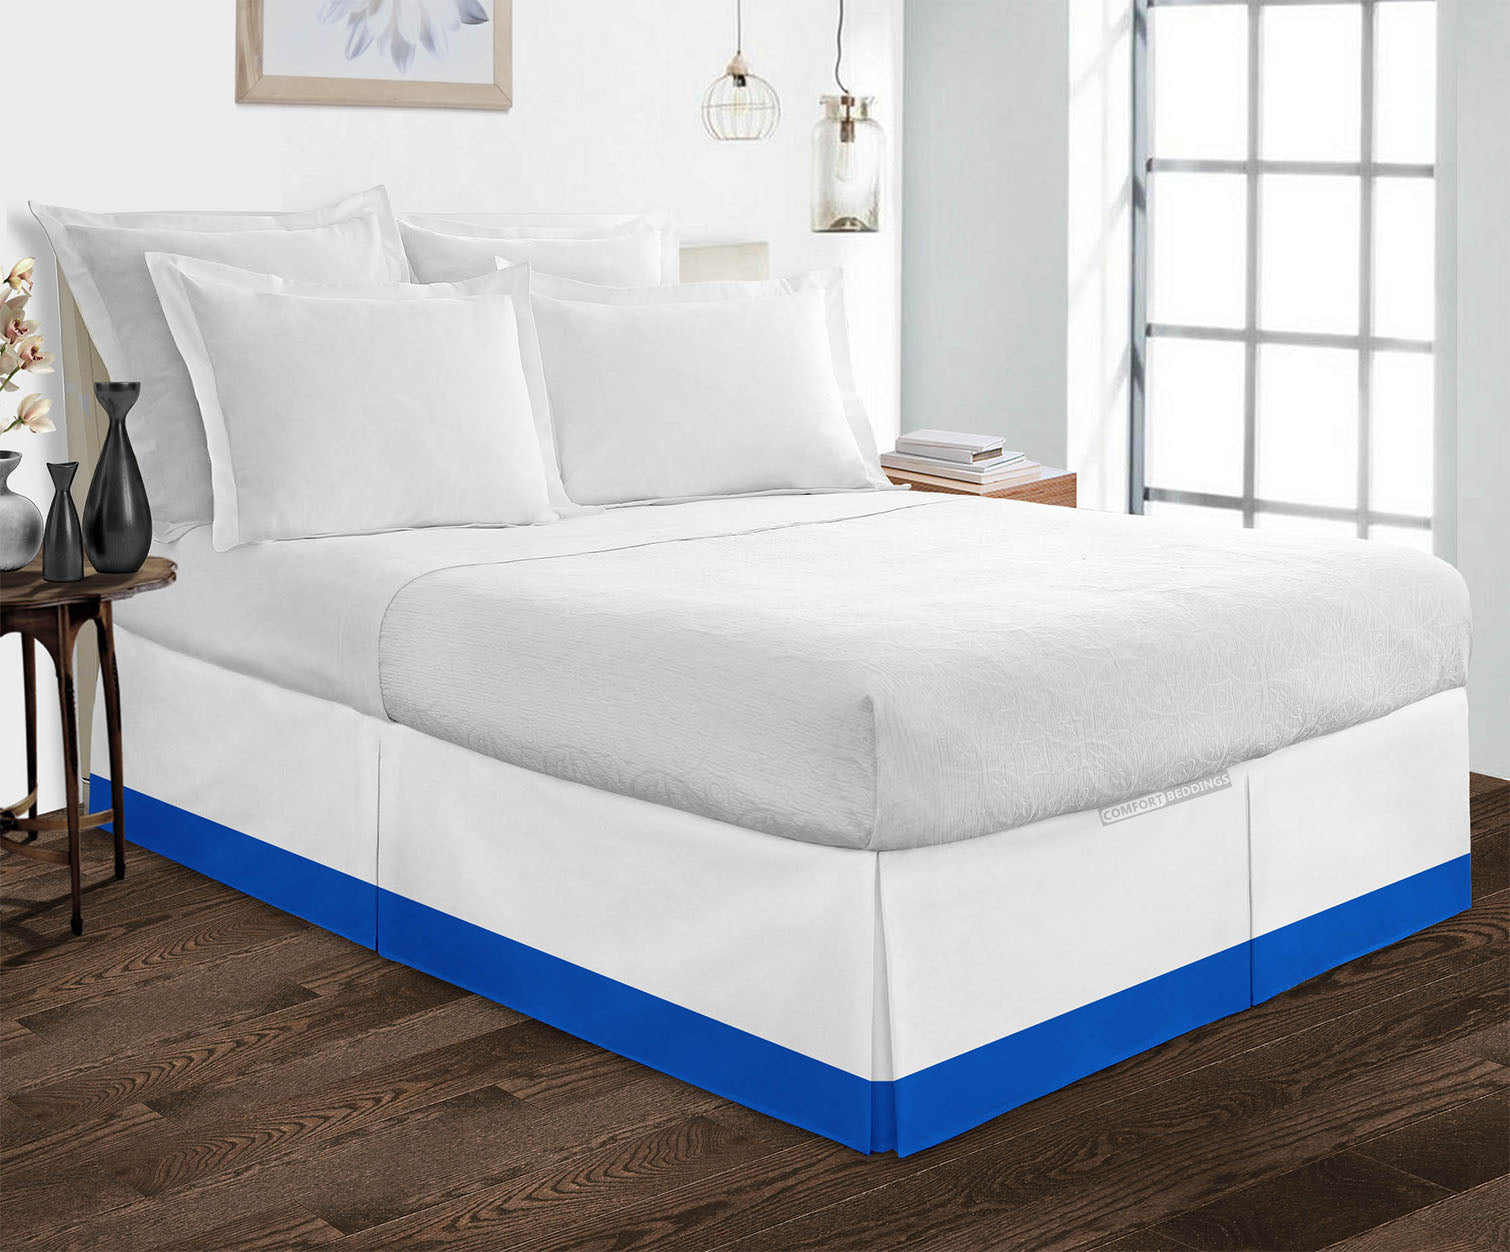 Essential Royal Blue two tone bed skirt